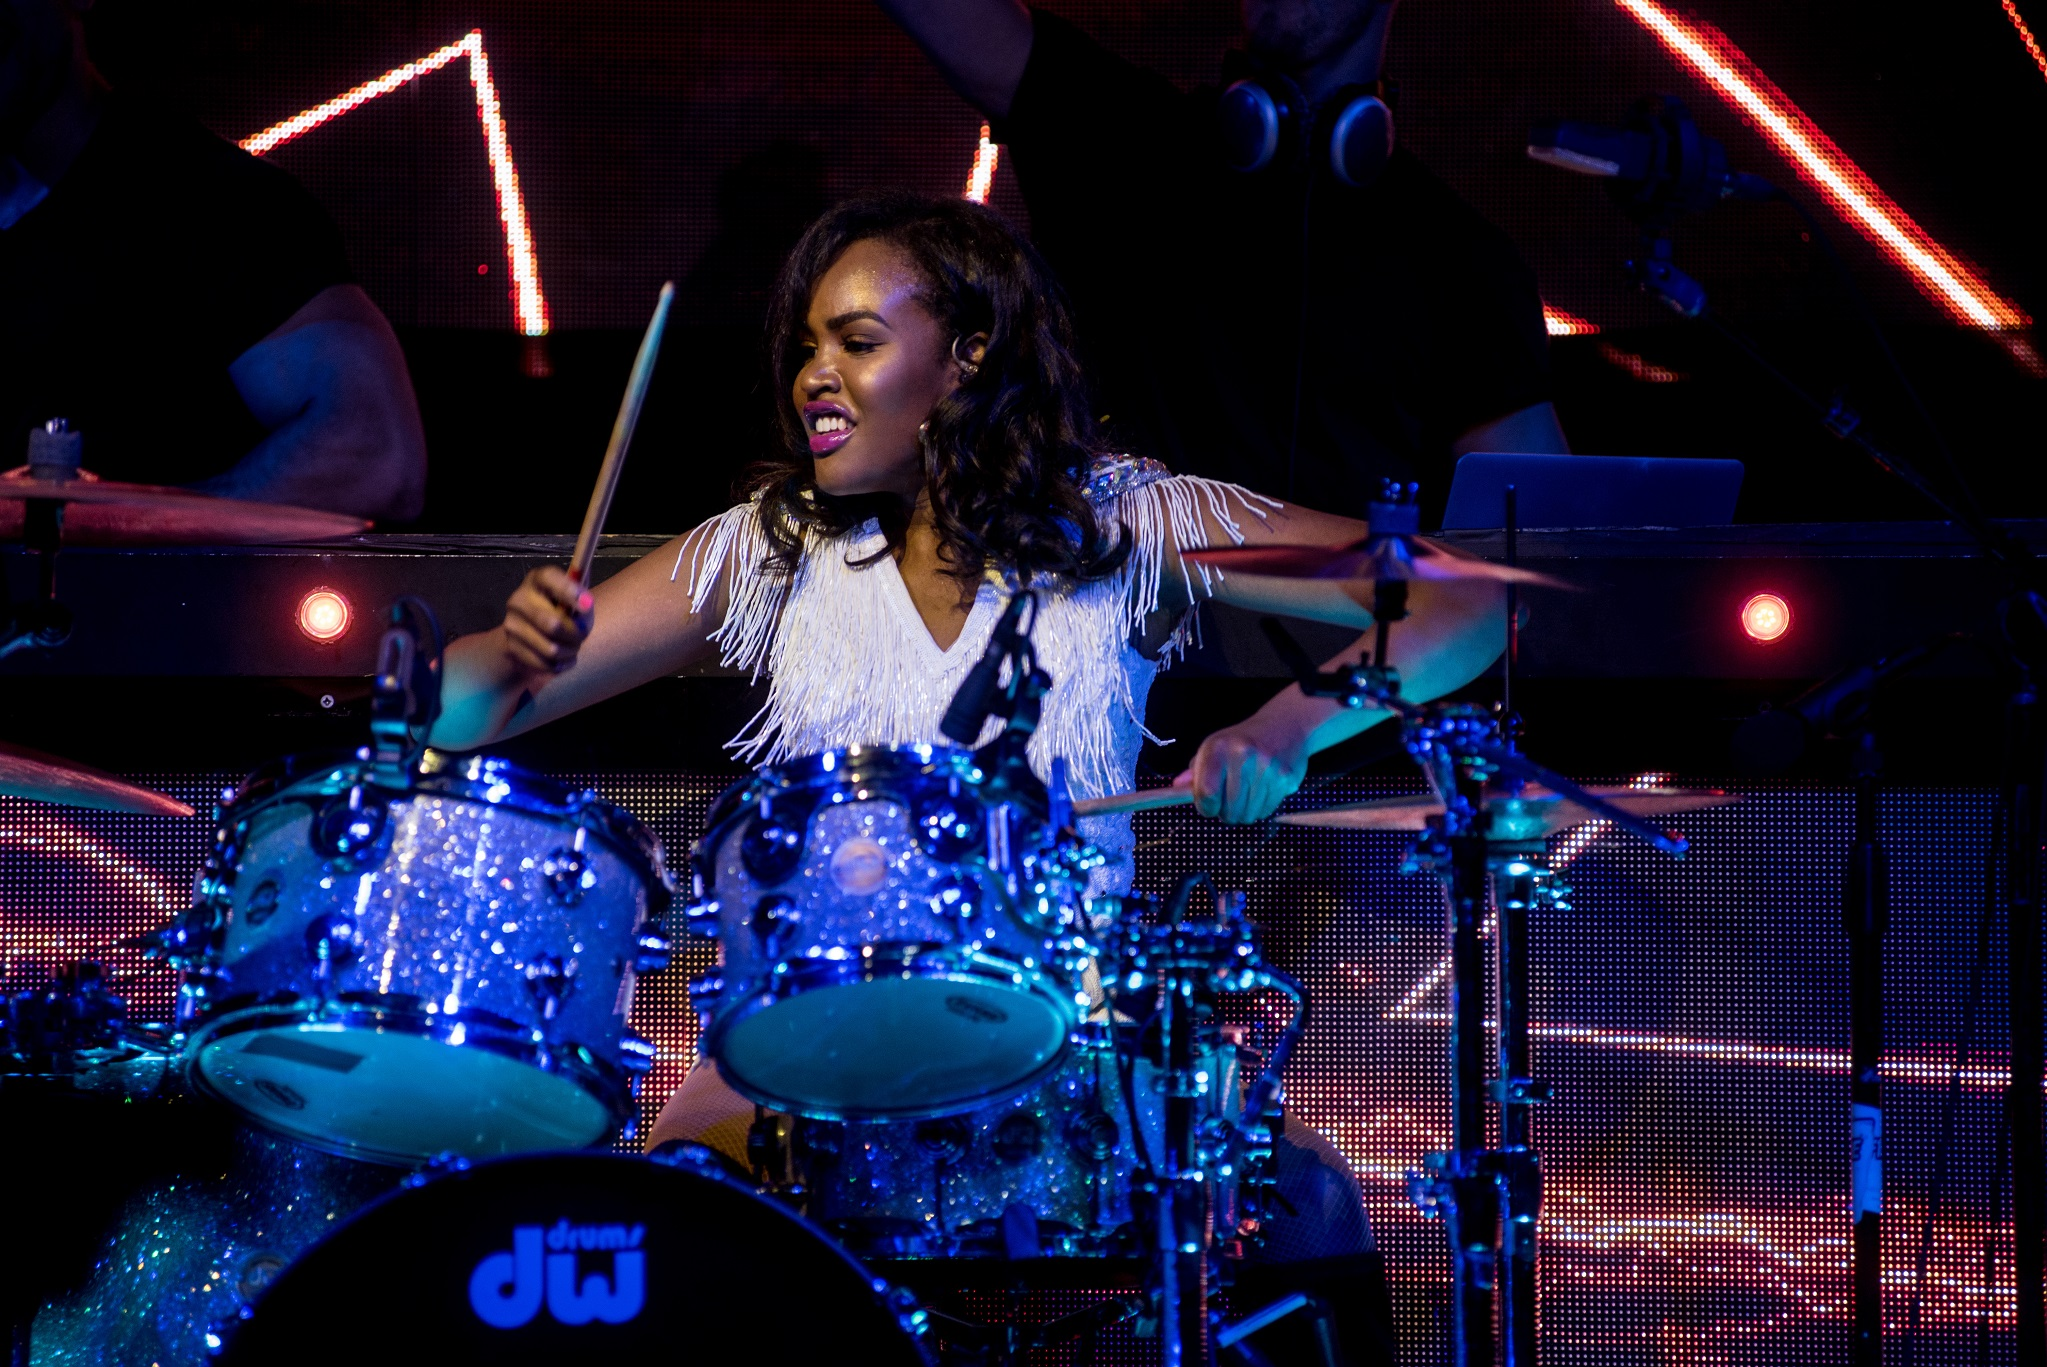 Glorious-Singer-Livetronica Drummer-Producer-Songwriter-Marquee-Nightclub-Video-New York-NY-47lr.jpg